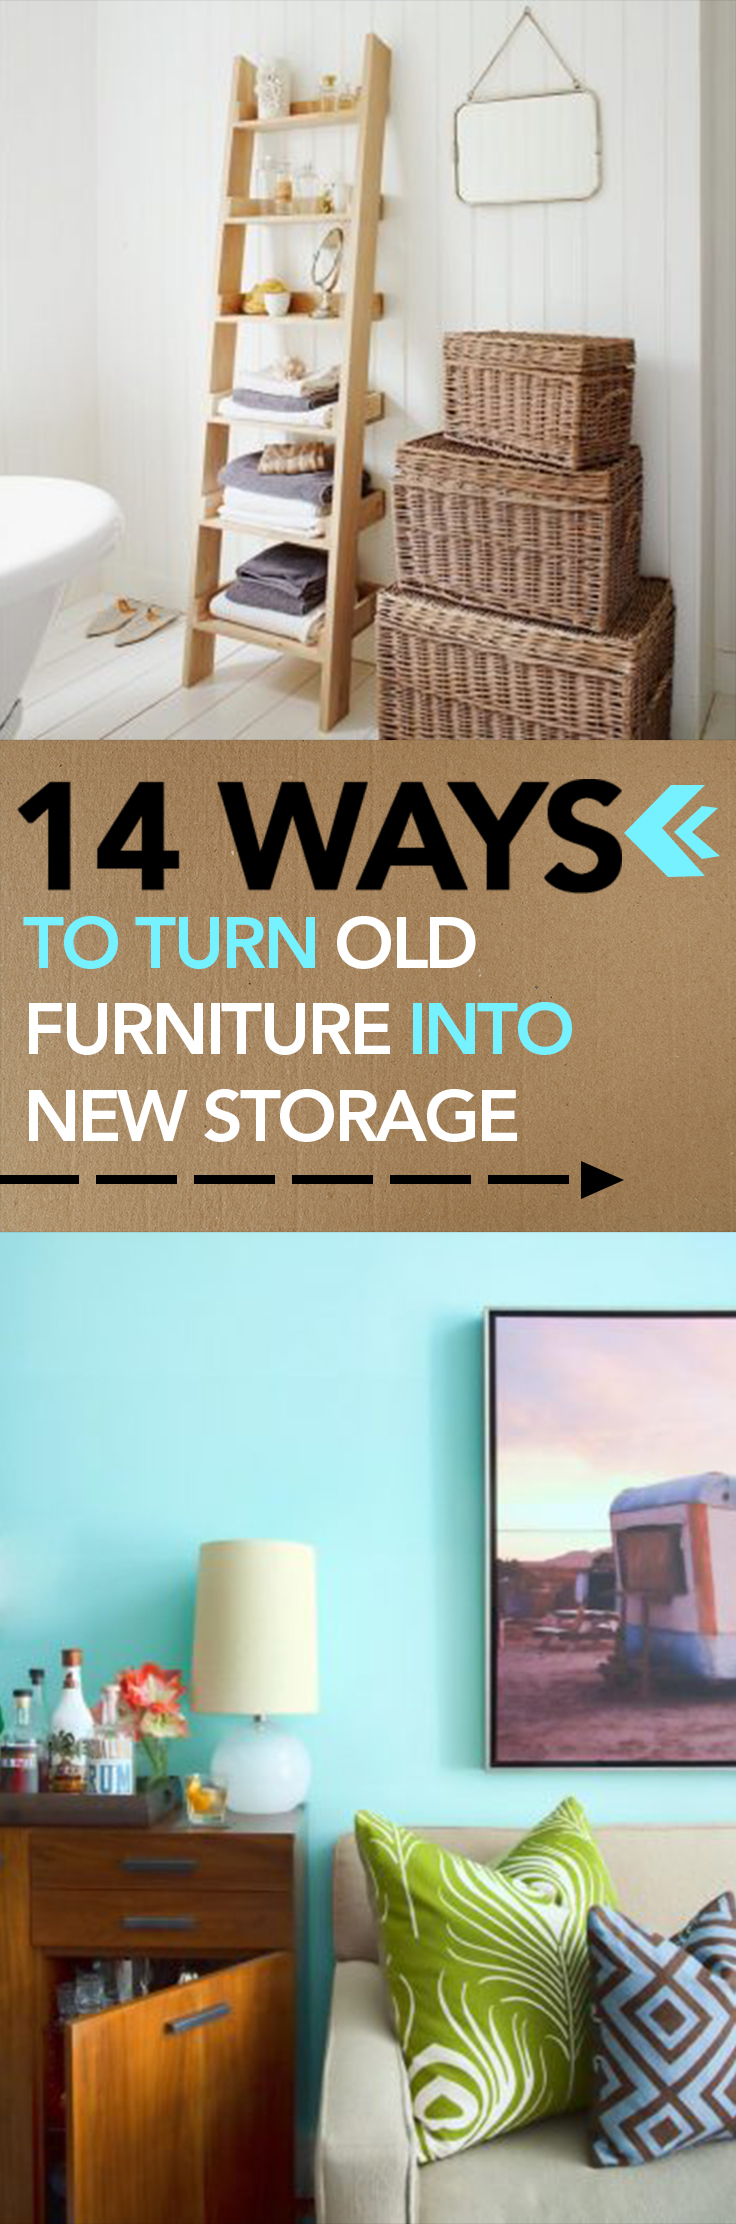 5 Ways to Turn Old Into New Furniture